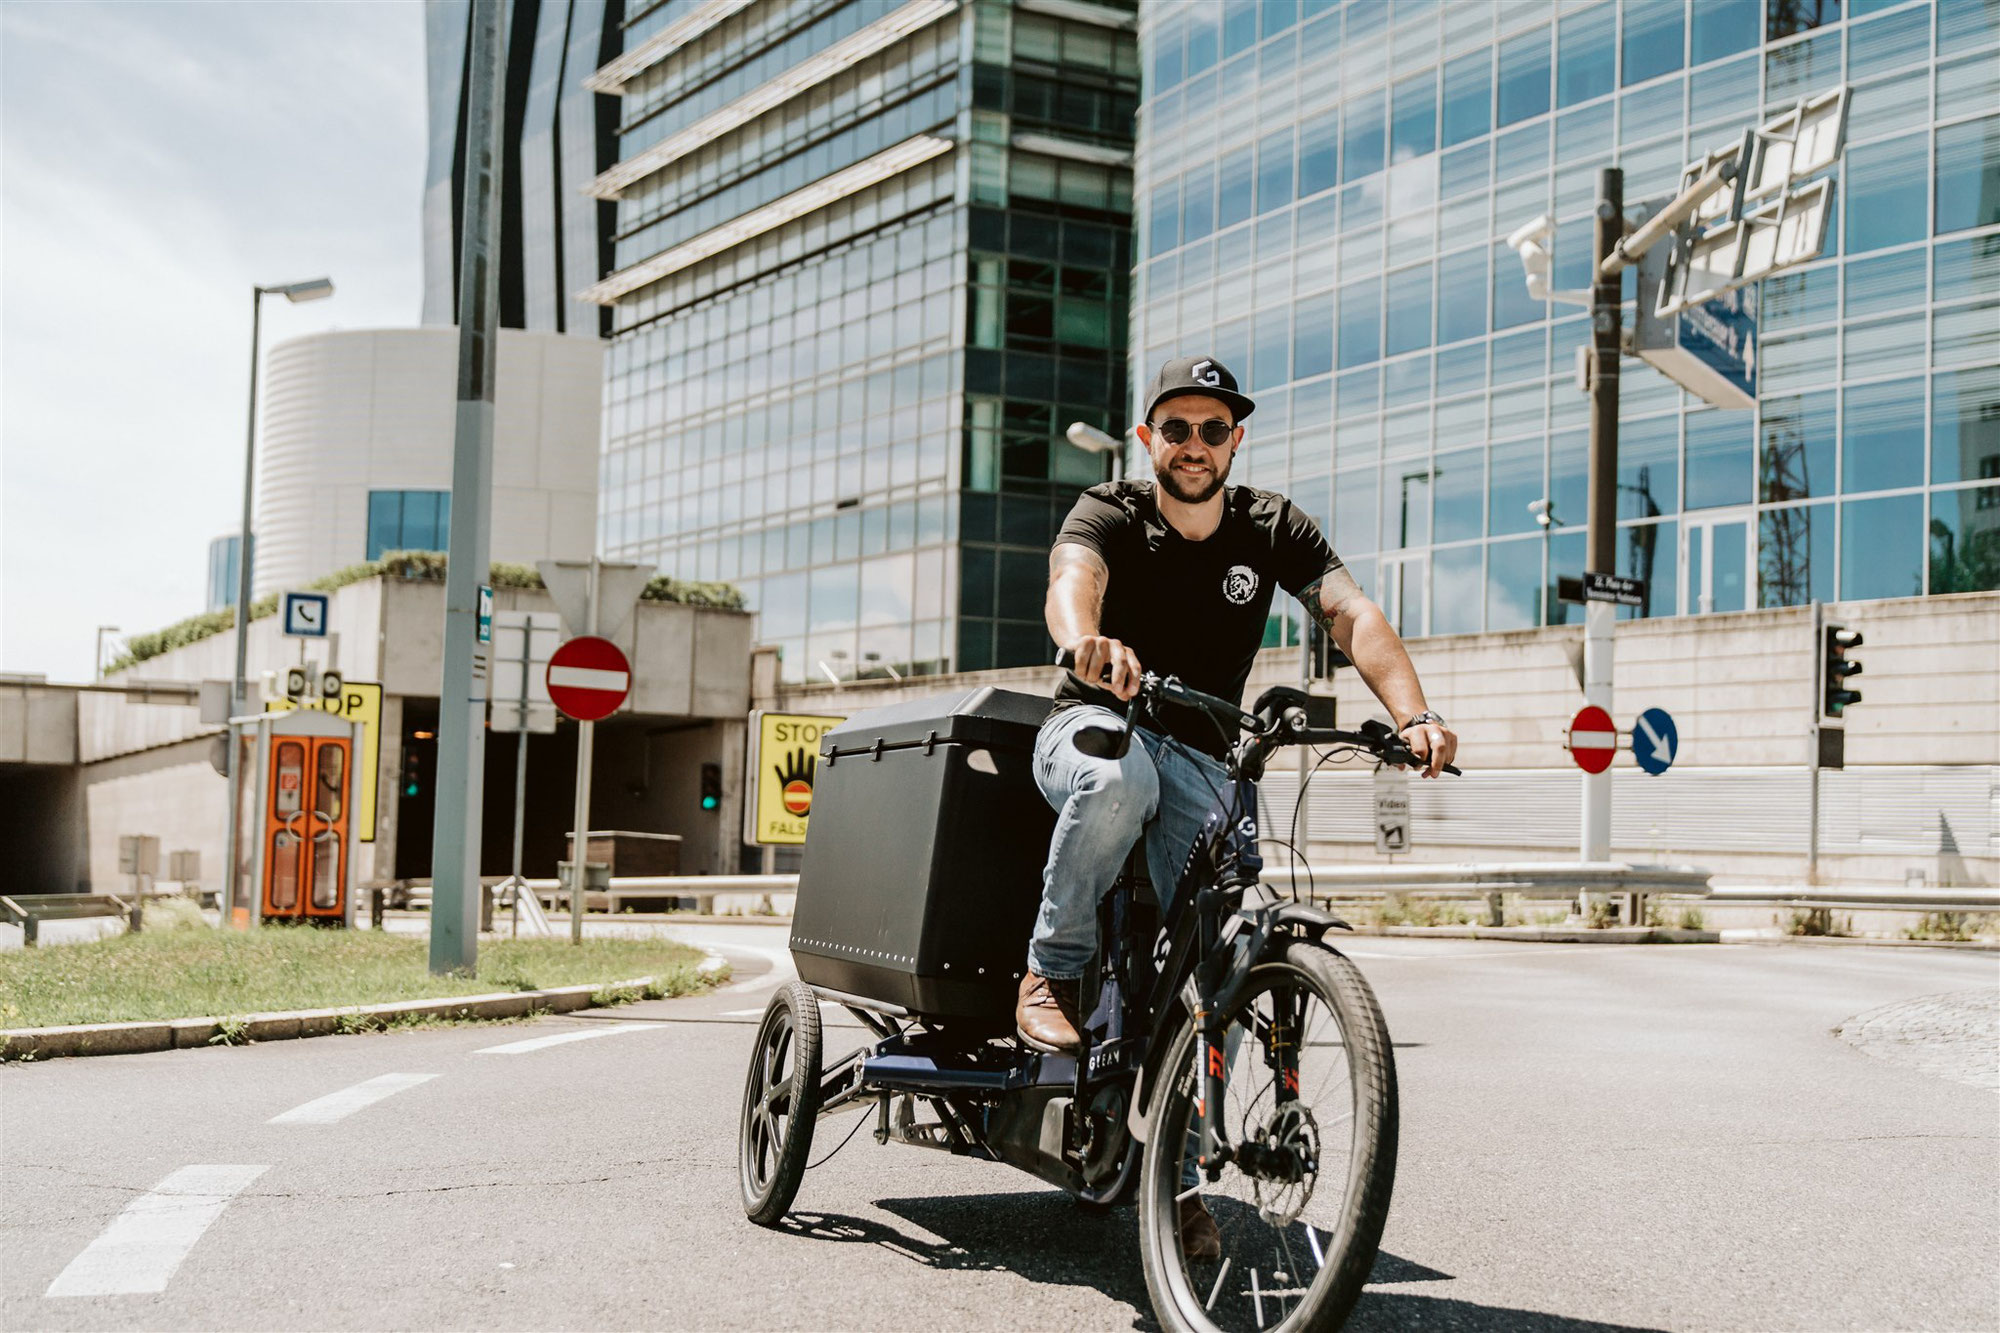 Revolution des Cargo-Bike-Marktes: Multi Use Bike von Gleam